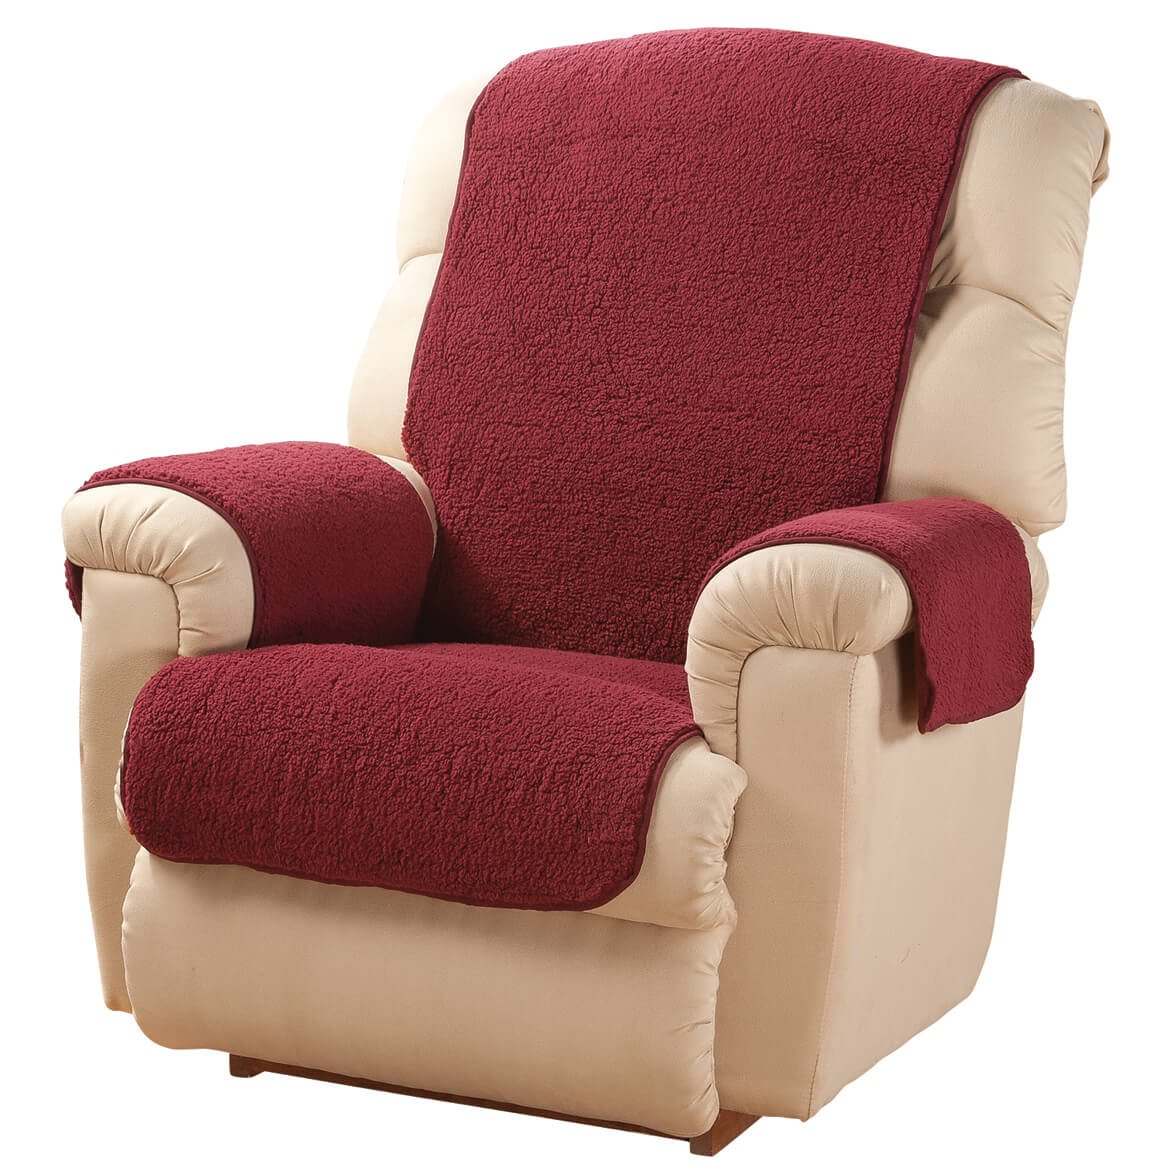 Sherpa Recliner Protector by OakRidgeTM, Burgundy 340461